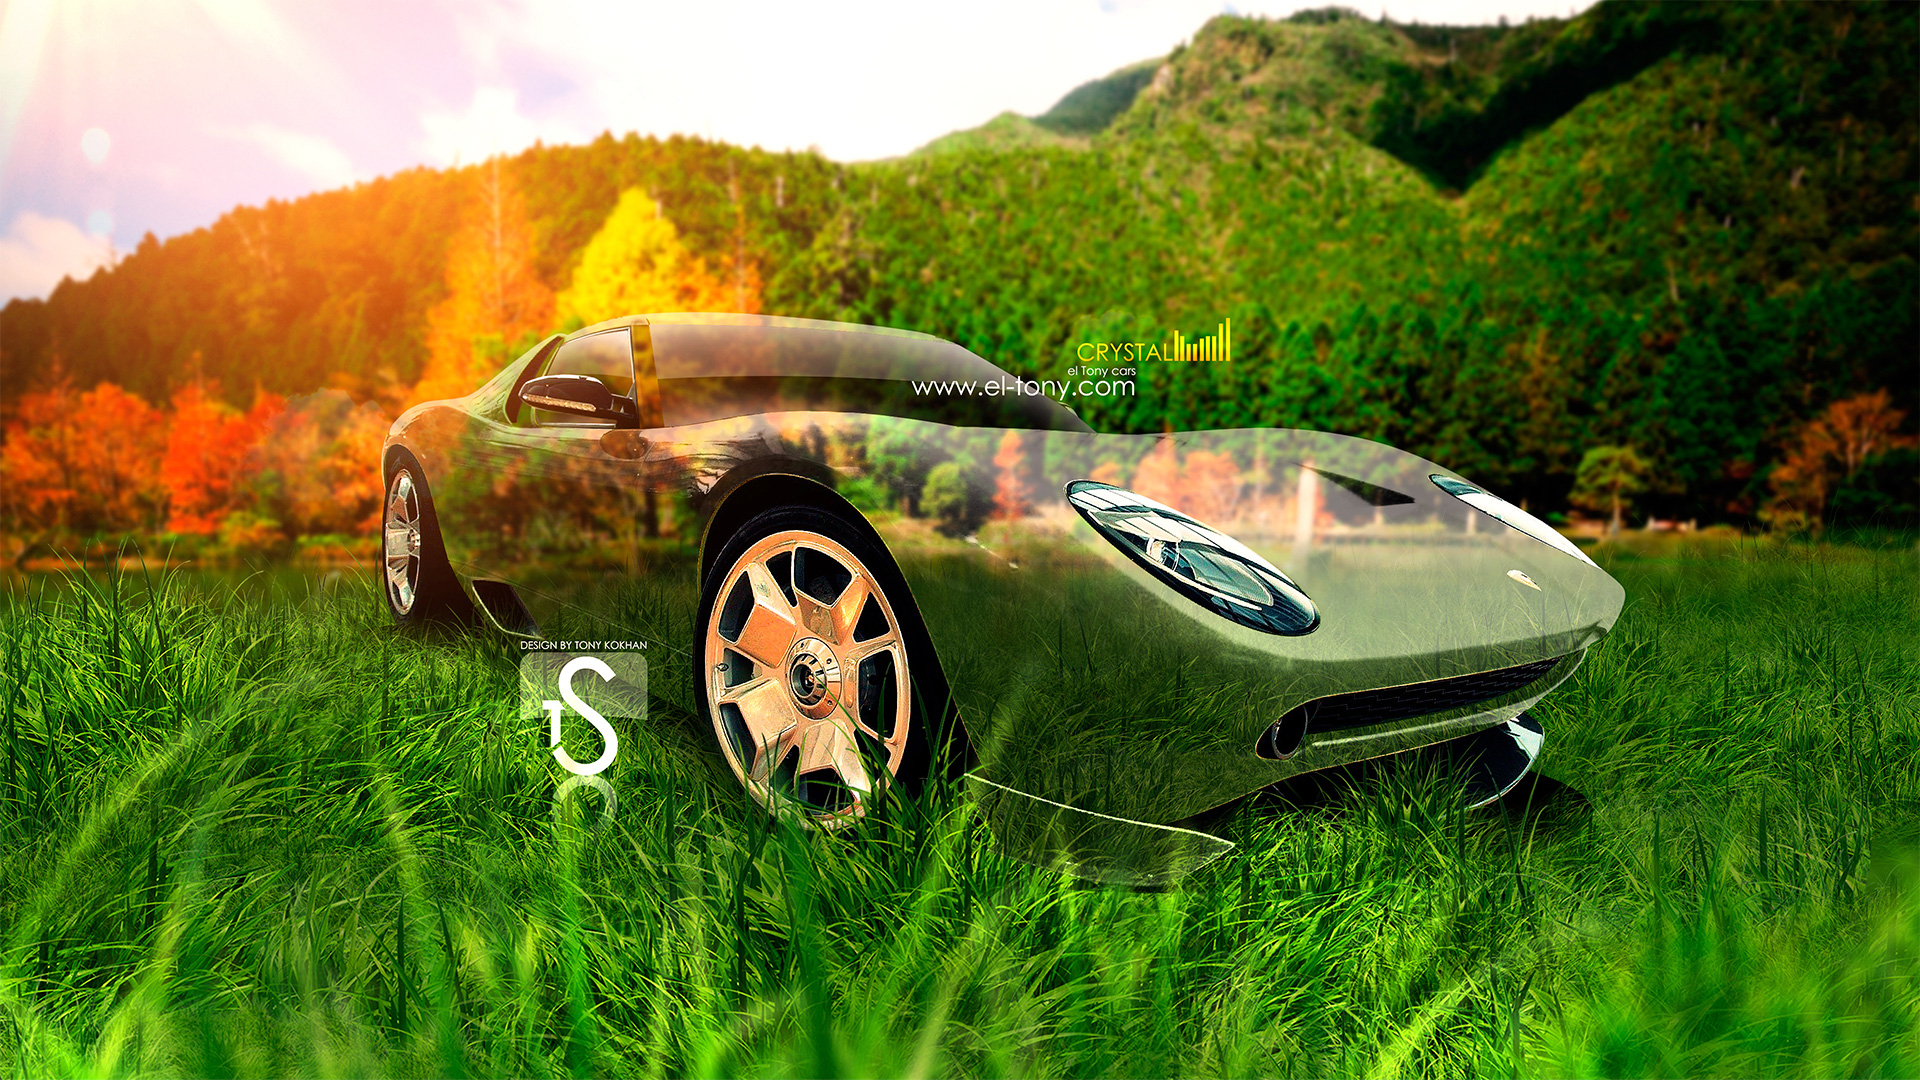 Attrayant Lamborghini Miura Crystal Nature Car 2013 HD Wallpapers